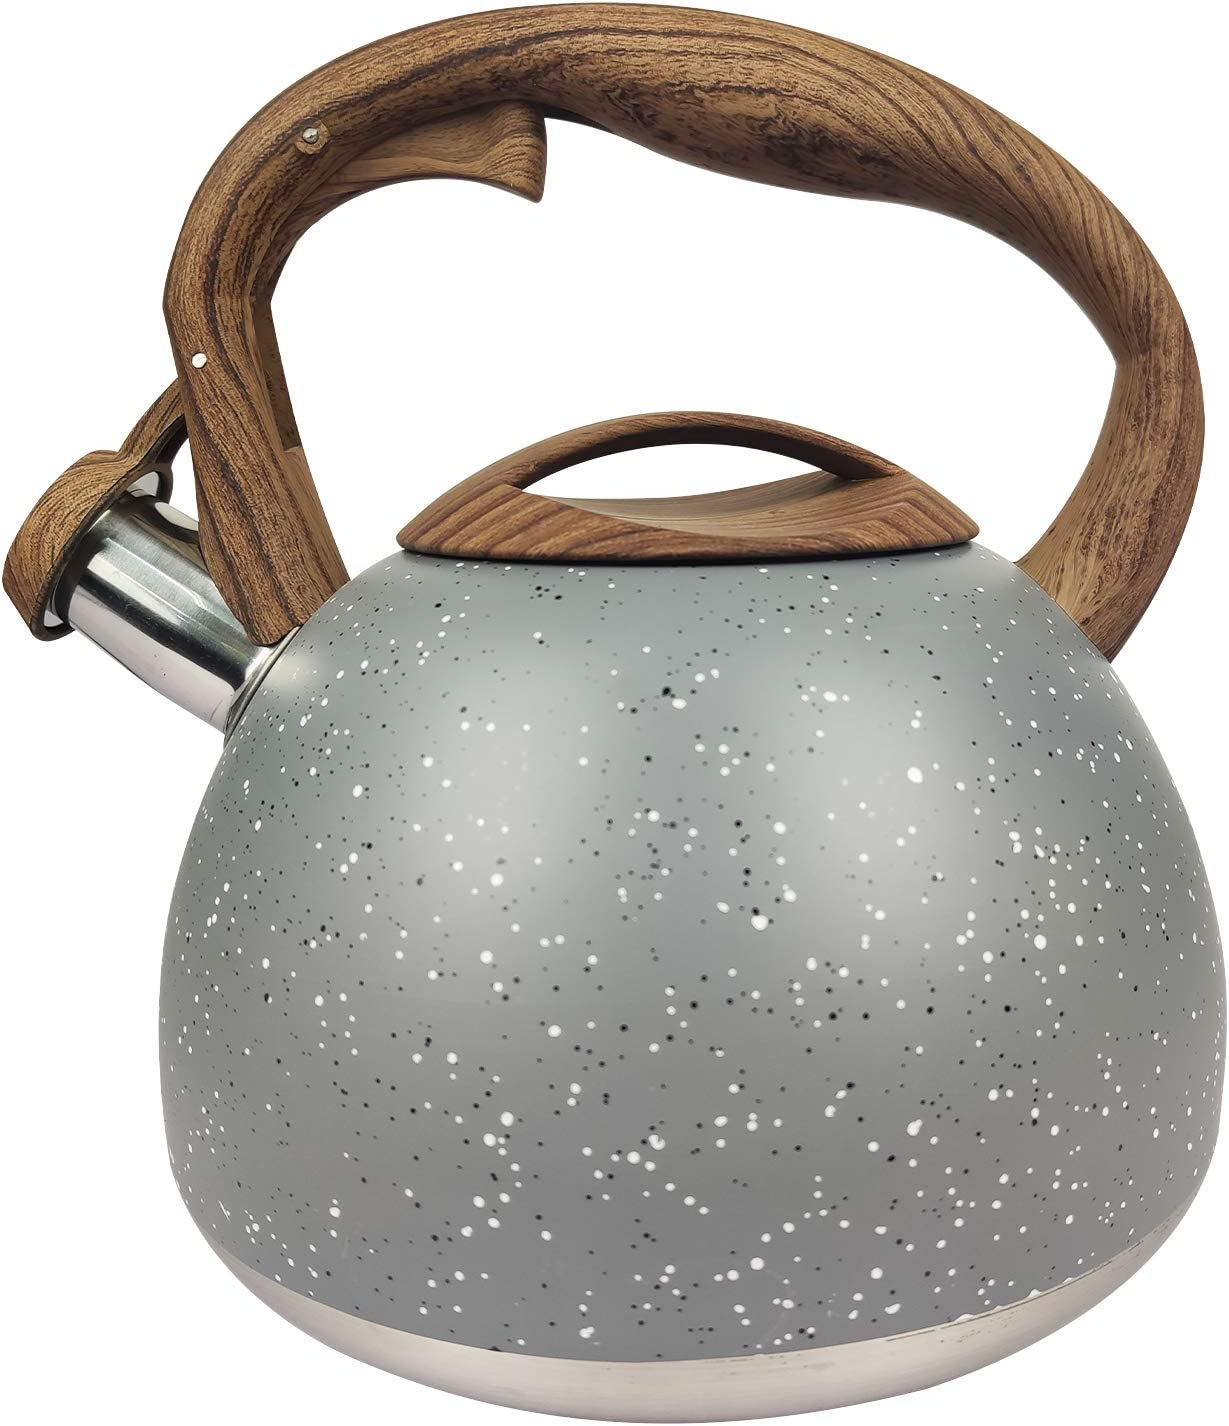 Lesirit Tea Coffee Kettle, 3.2Quart Audible Whistling Teapot with Anti-Hot Handle and Anti-Rust Food Grade Stainless Steel Teakettle for all Stovetops (Grey)